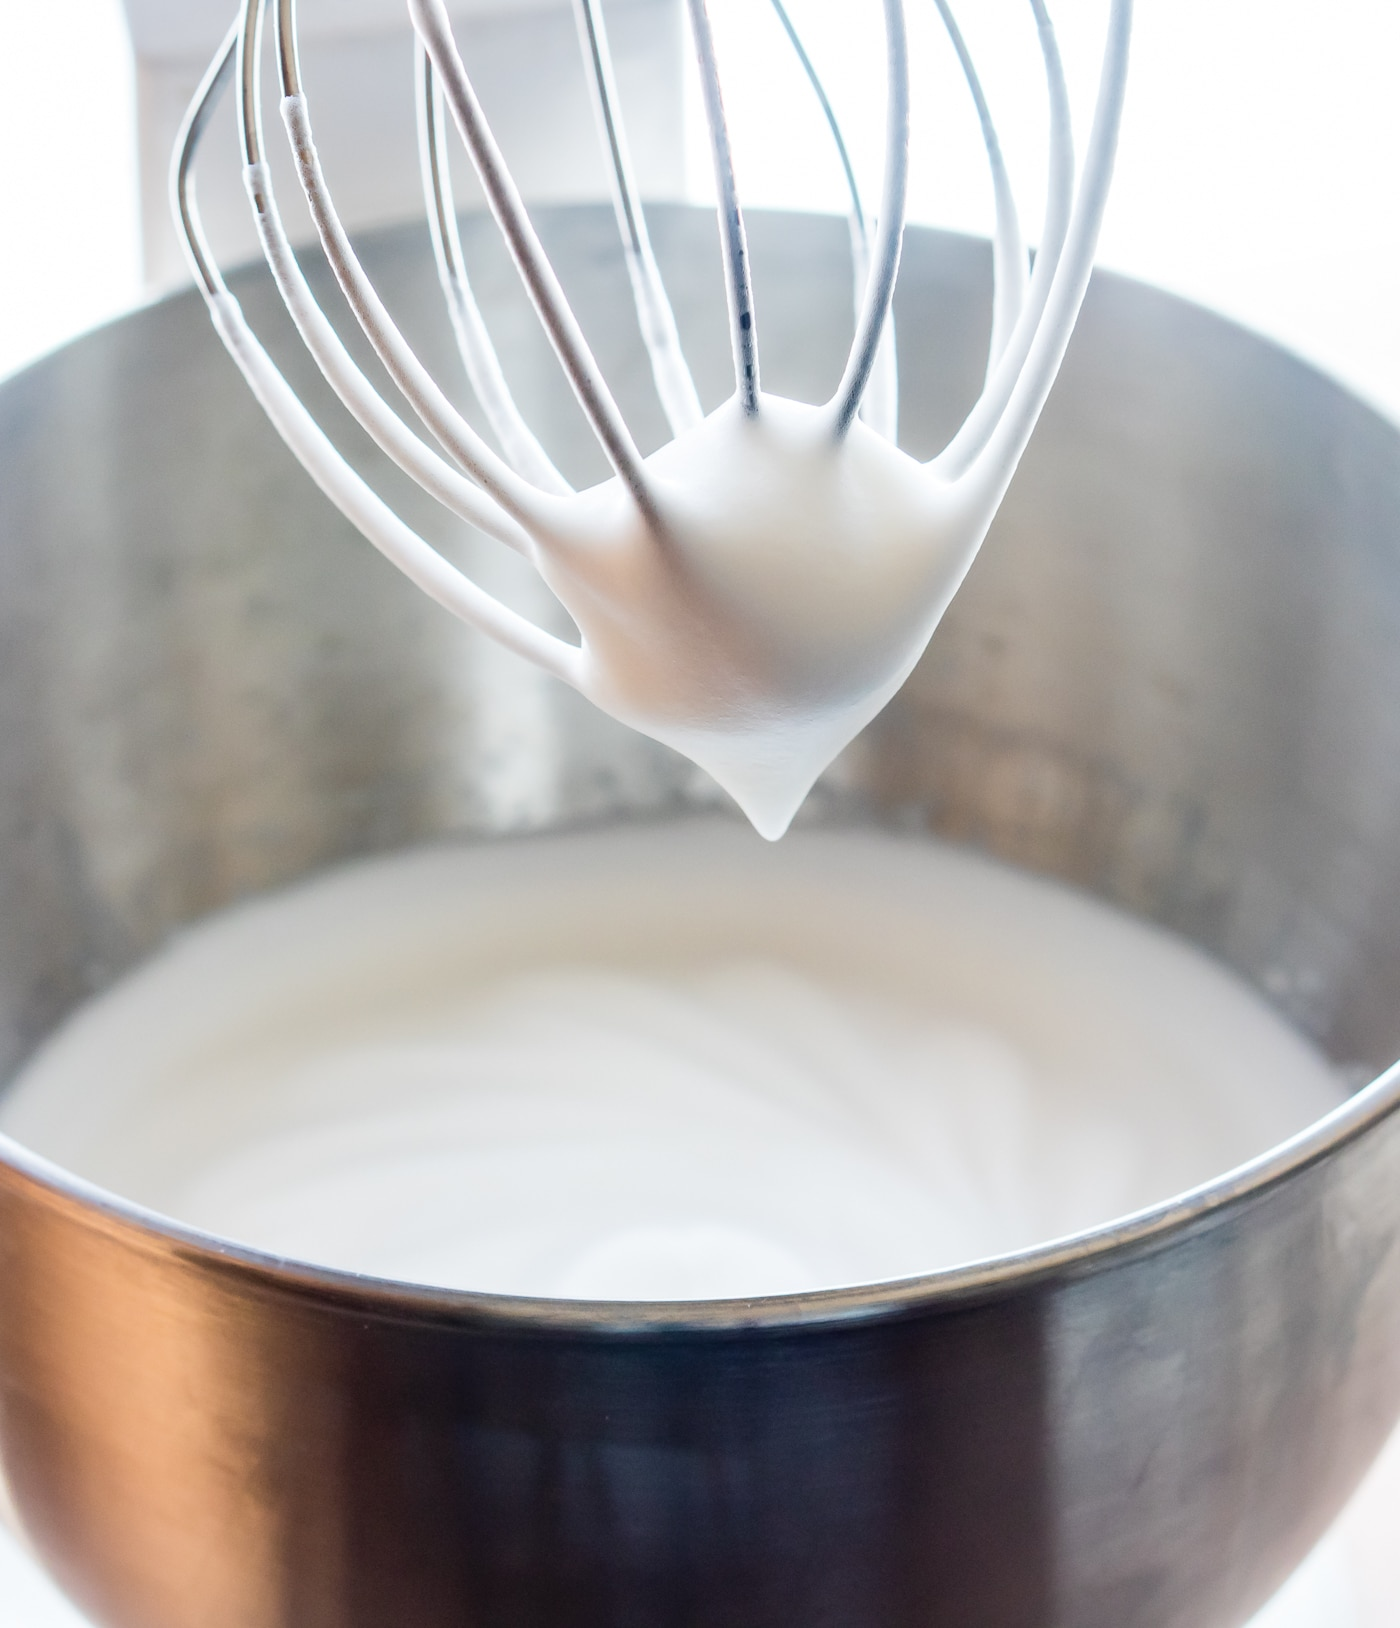 How to make Aquafaba for Vegan and Egg Free Baking.